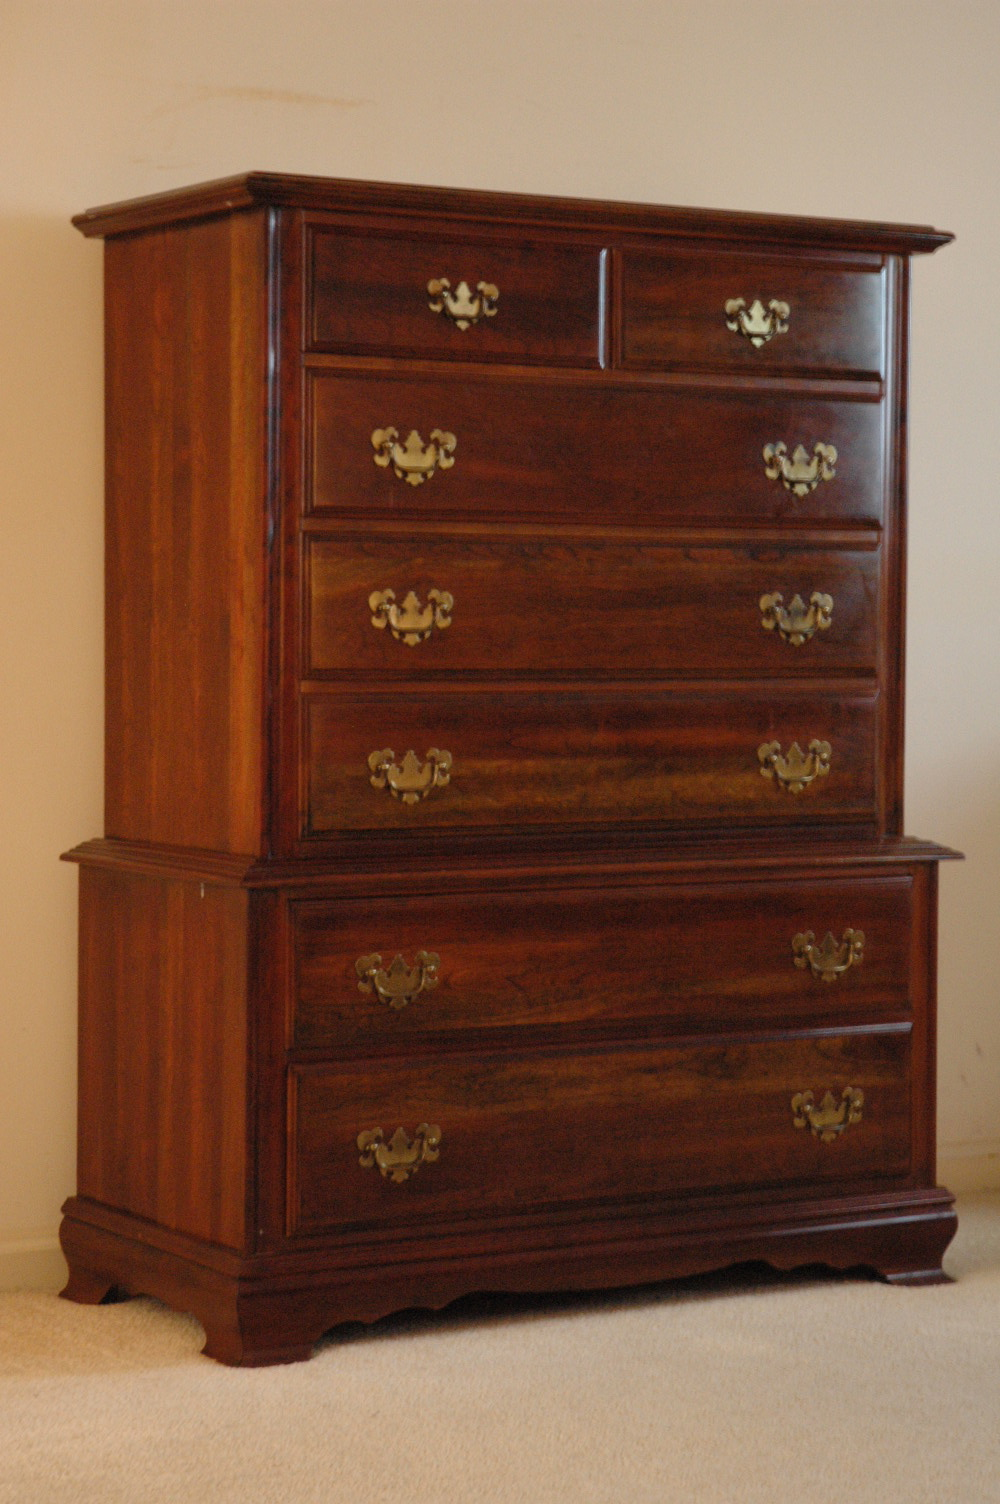 Dresser wordreference forums for Interior wordreference